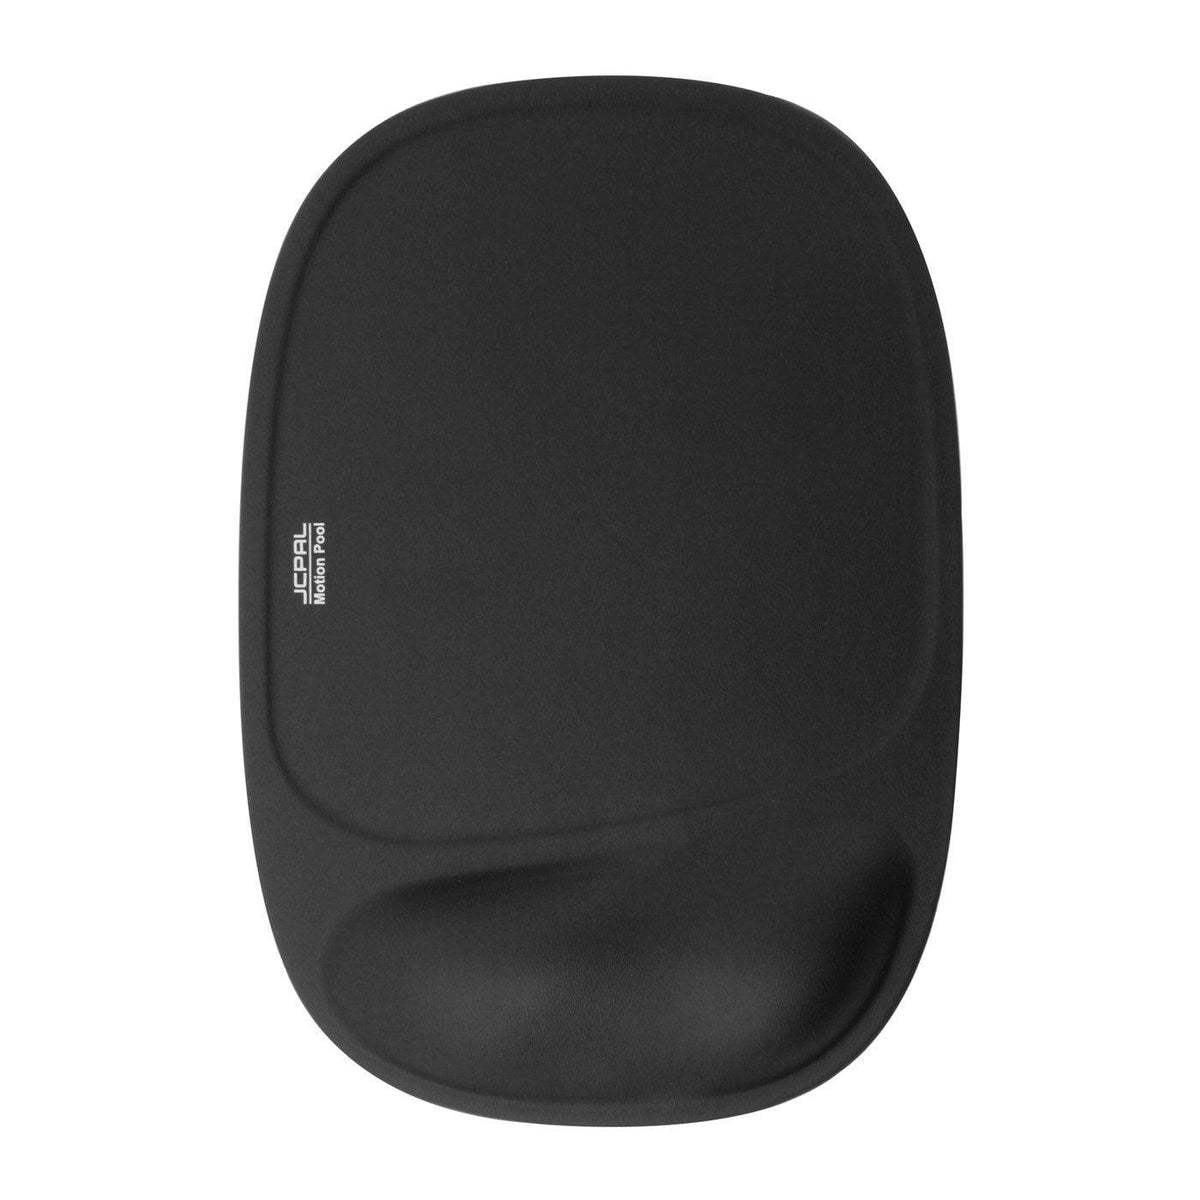 JCPal Accessories ComforPad Ergonomic Mouse Pad